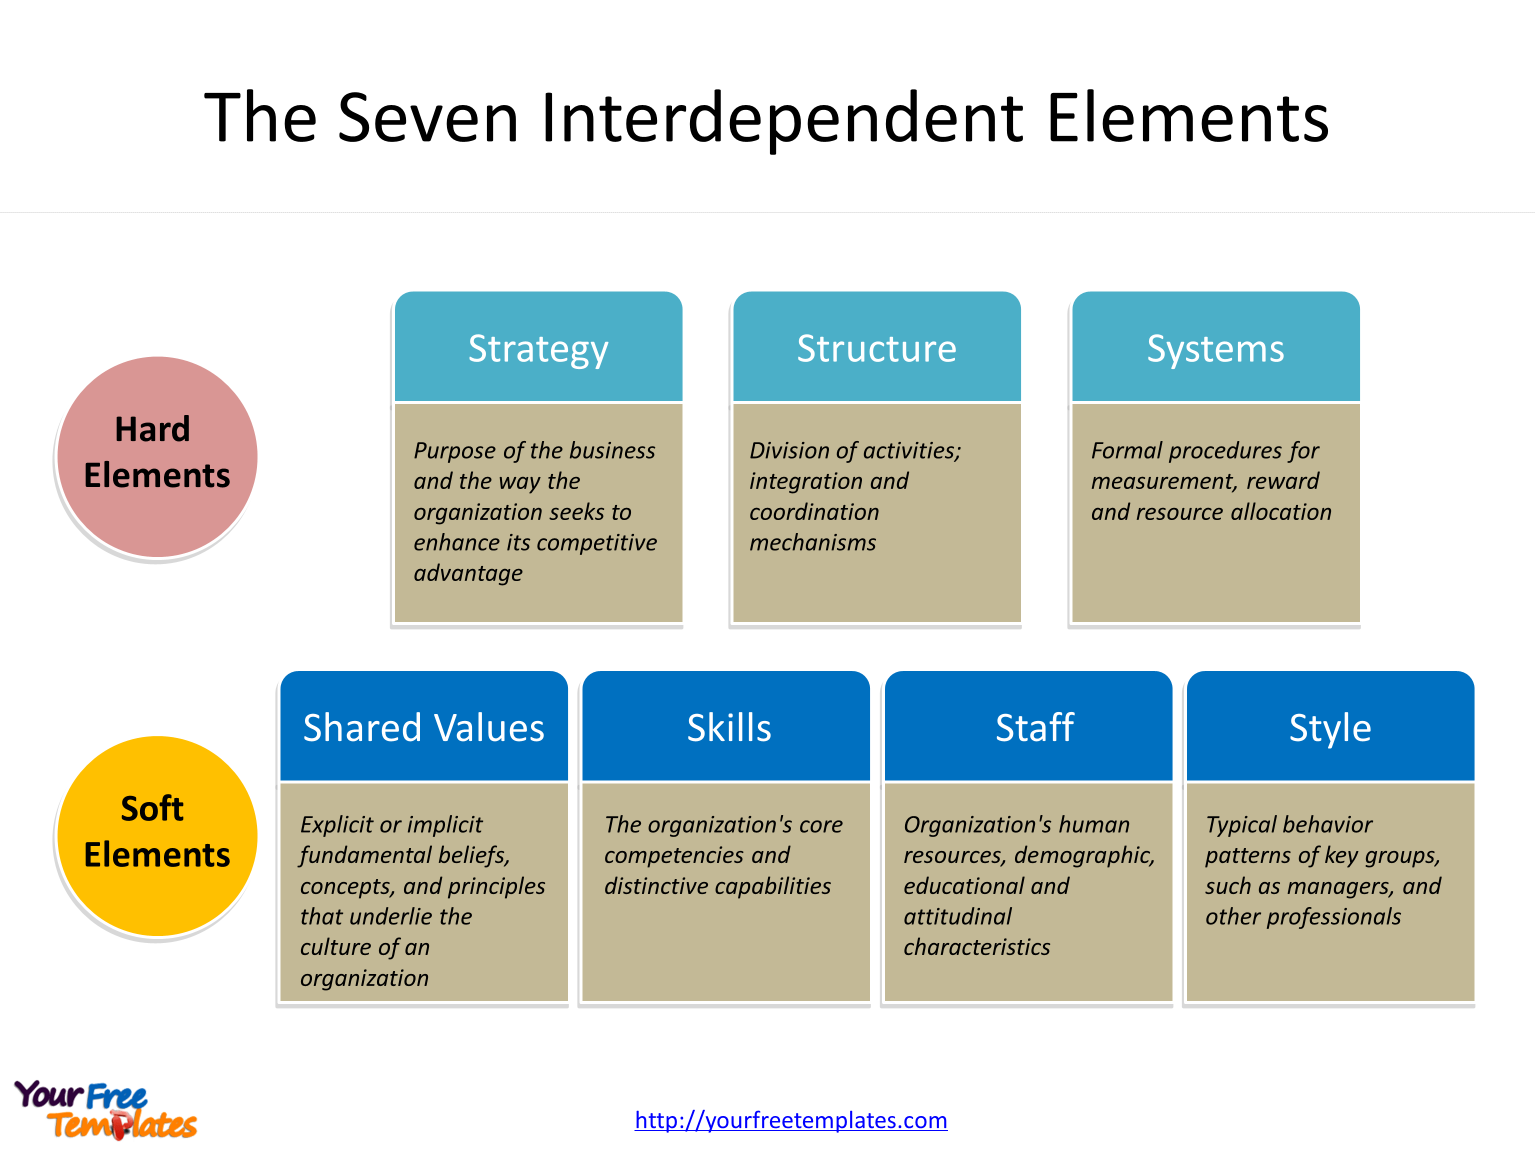 McKinsey 7S Framework template of structure, strategy, systems, skills, style, staff and shared values